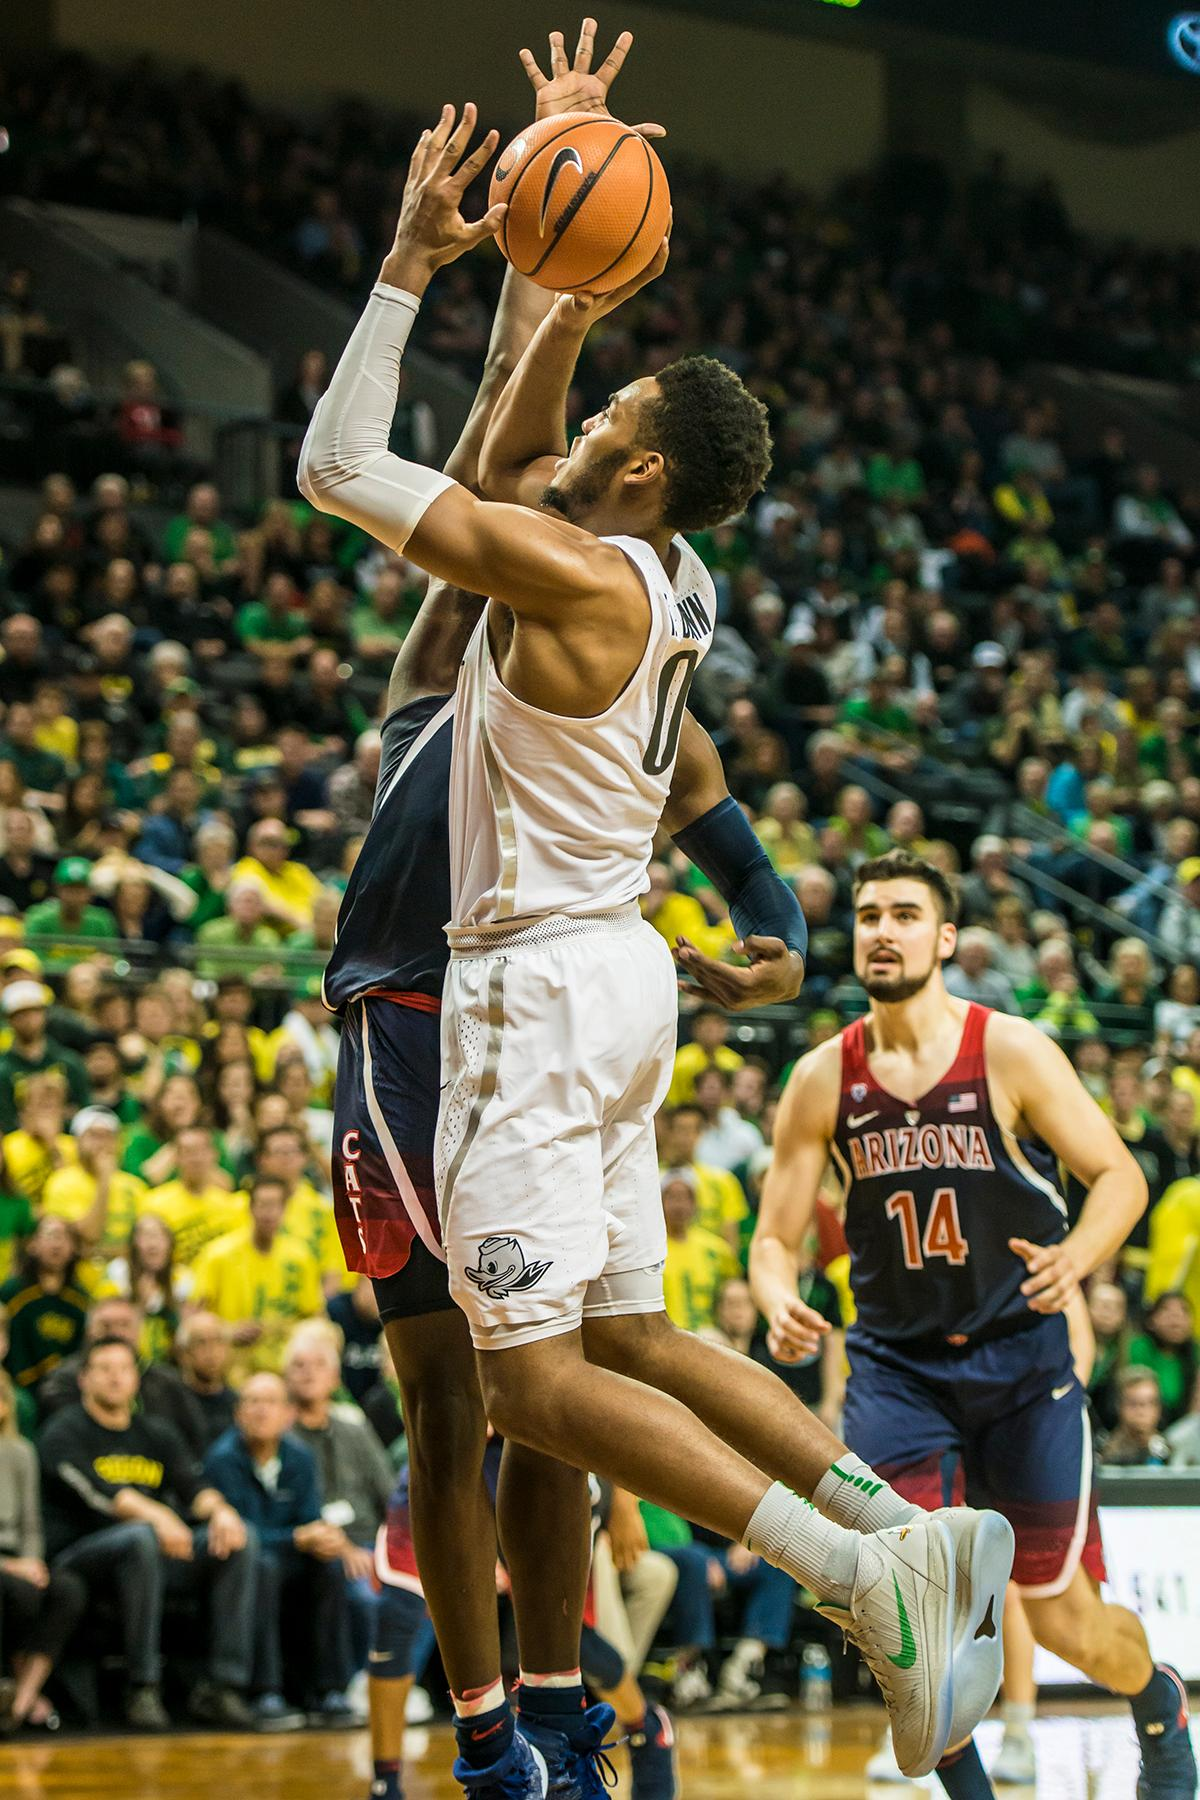 Oregon's Troy Brown jr. shoots against an Arizona defender in theor matchup at Matthew Knight Arena Saturday. The Ducks upset the fourteenth ranked Wildcats 98-93 in a stunning overtime win in front of a packed house of over 12,000 fans for their final home game to improve to a 19-10 (9-7 PAC-12) record on the season. Oregon will finish out regular season play on the road in Washington next week against Washington State on Thursday, then Washington on the following Saturday. (Photo by Colin Houck)